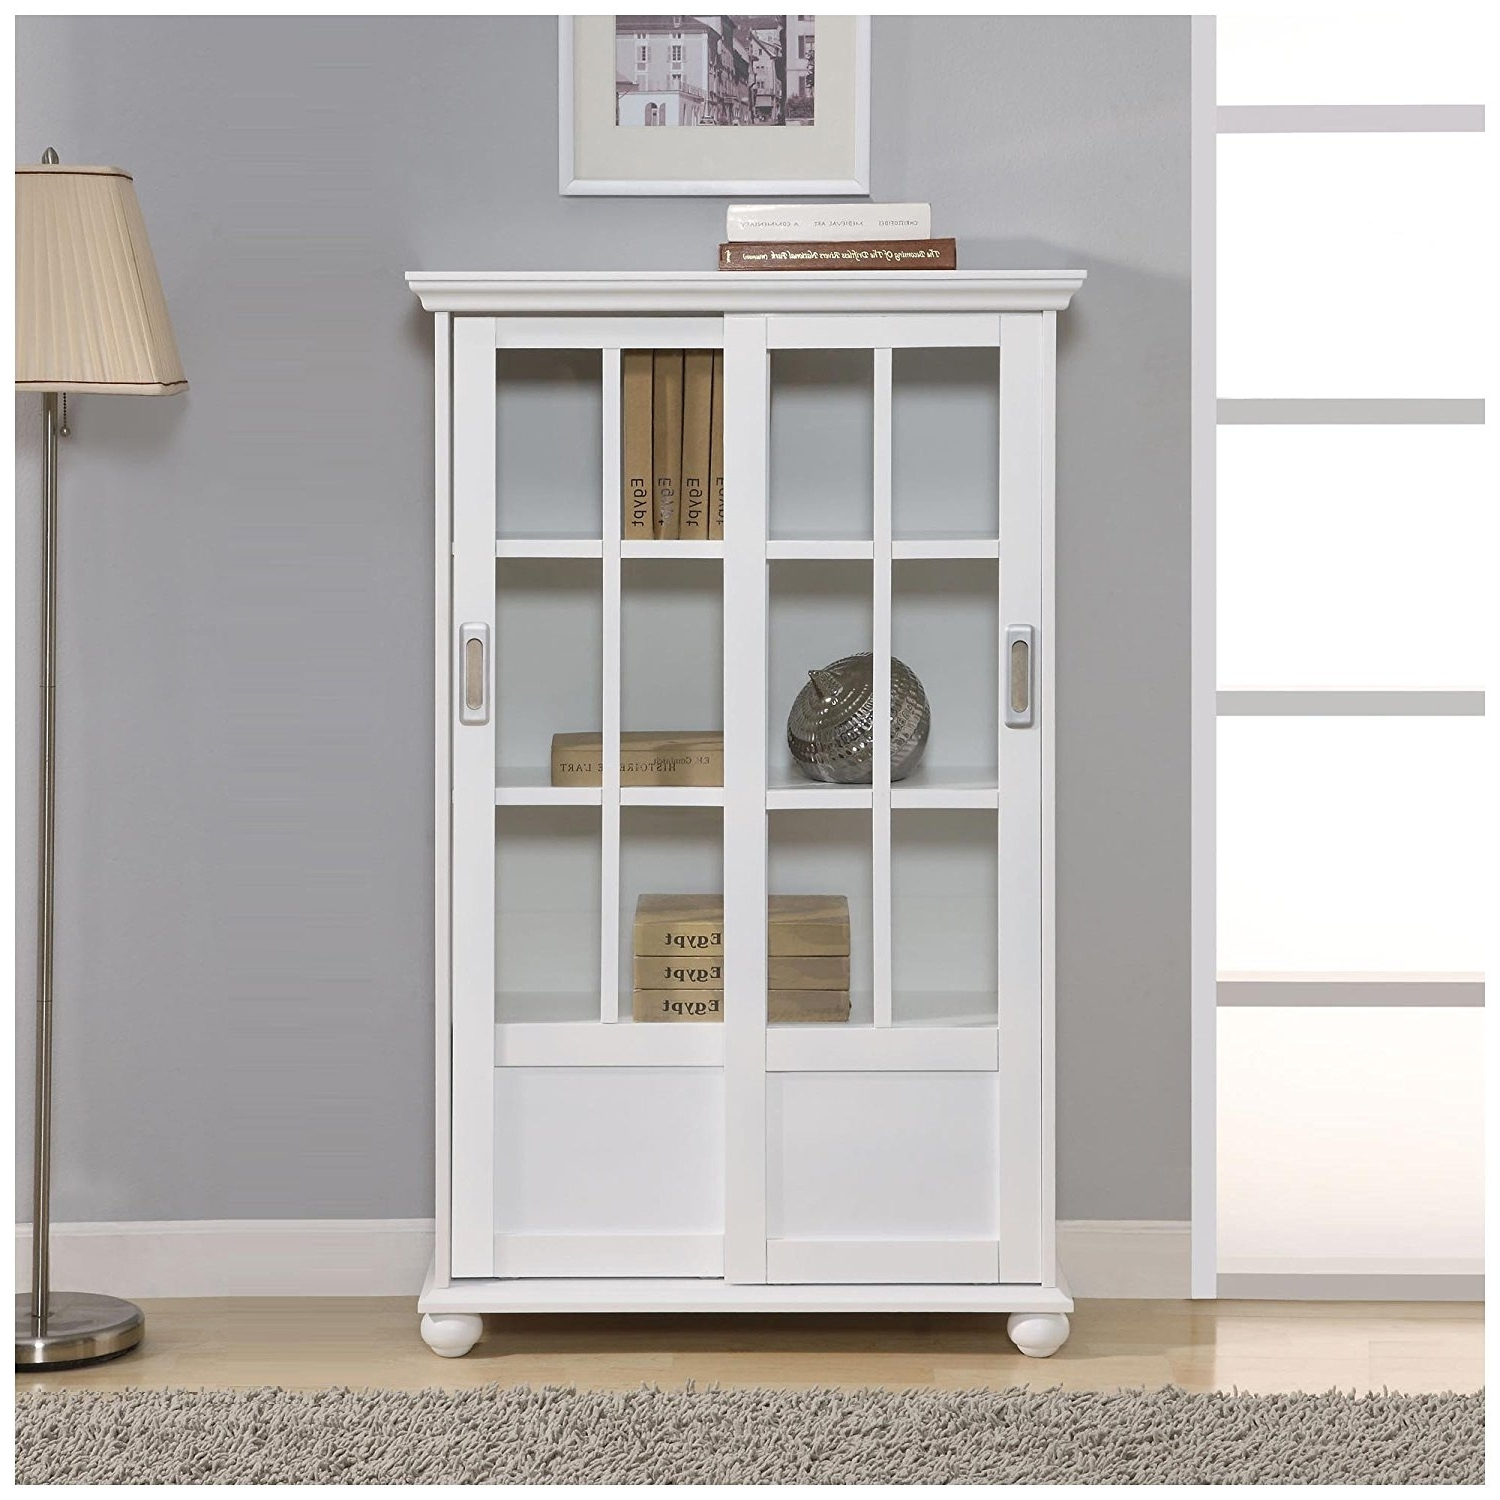 Amazon: Altra 9448096 Bookcase With Sliding Glass Doors, White Within Newest Bookcases With Sliding Glass Doors (View 4 of 15)